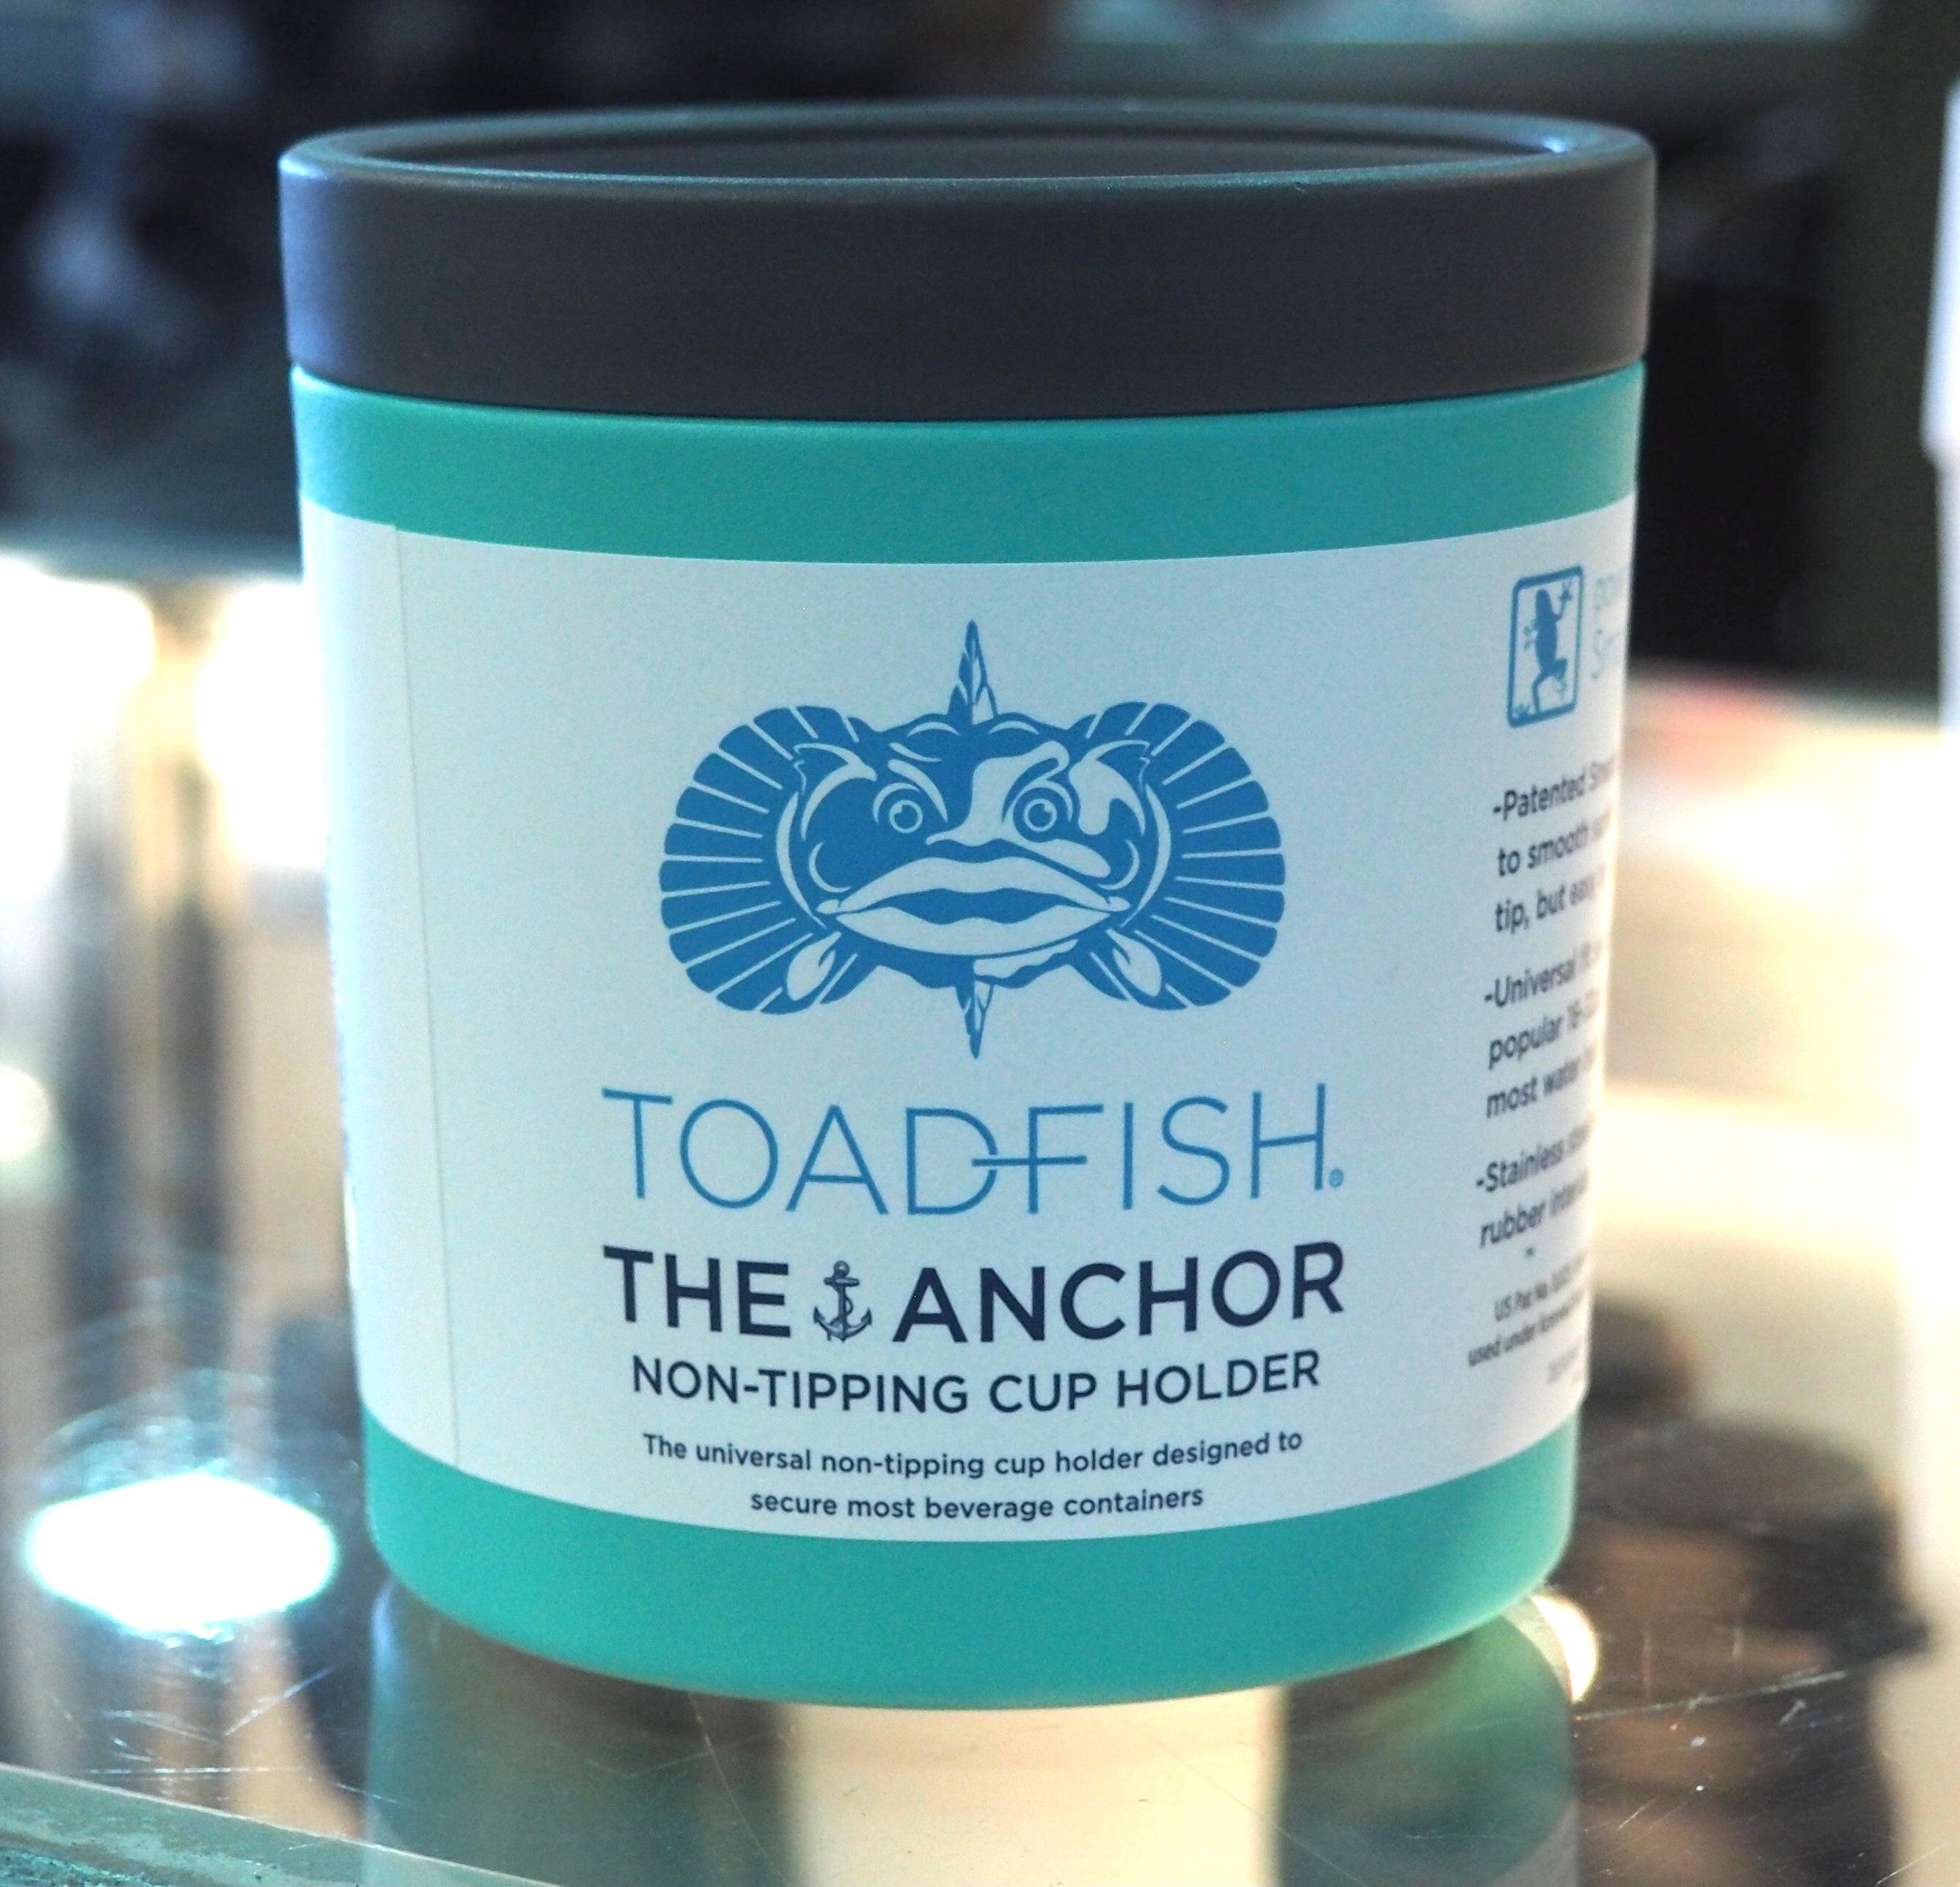 Toadfish The Anchor Non-Tipping Cup Holder